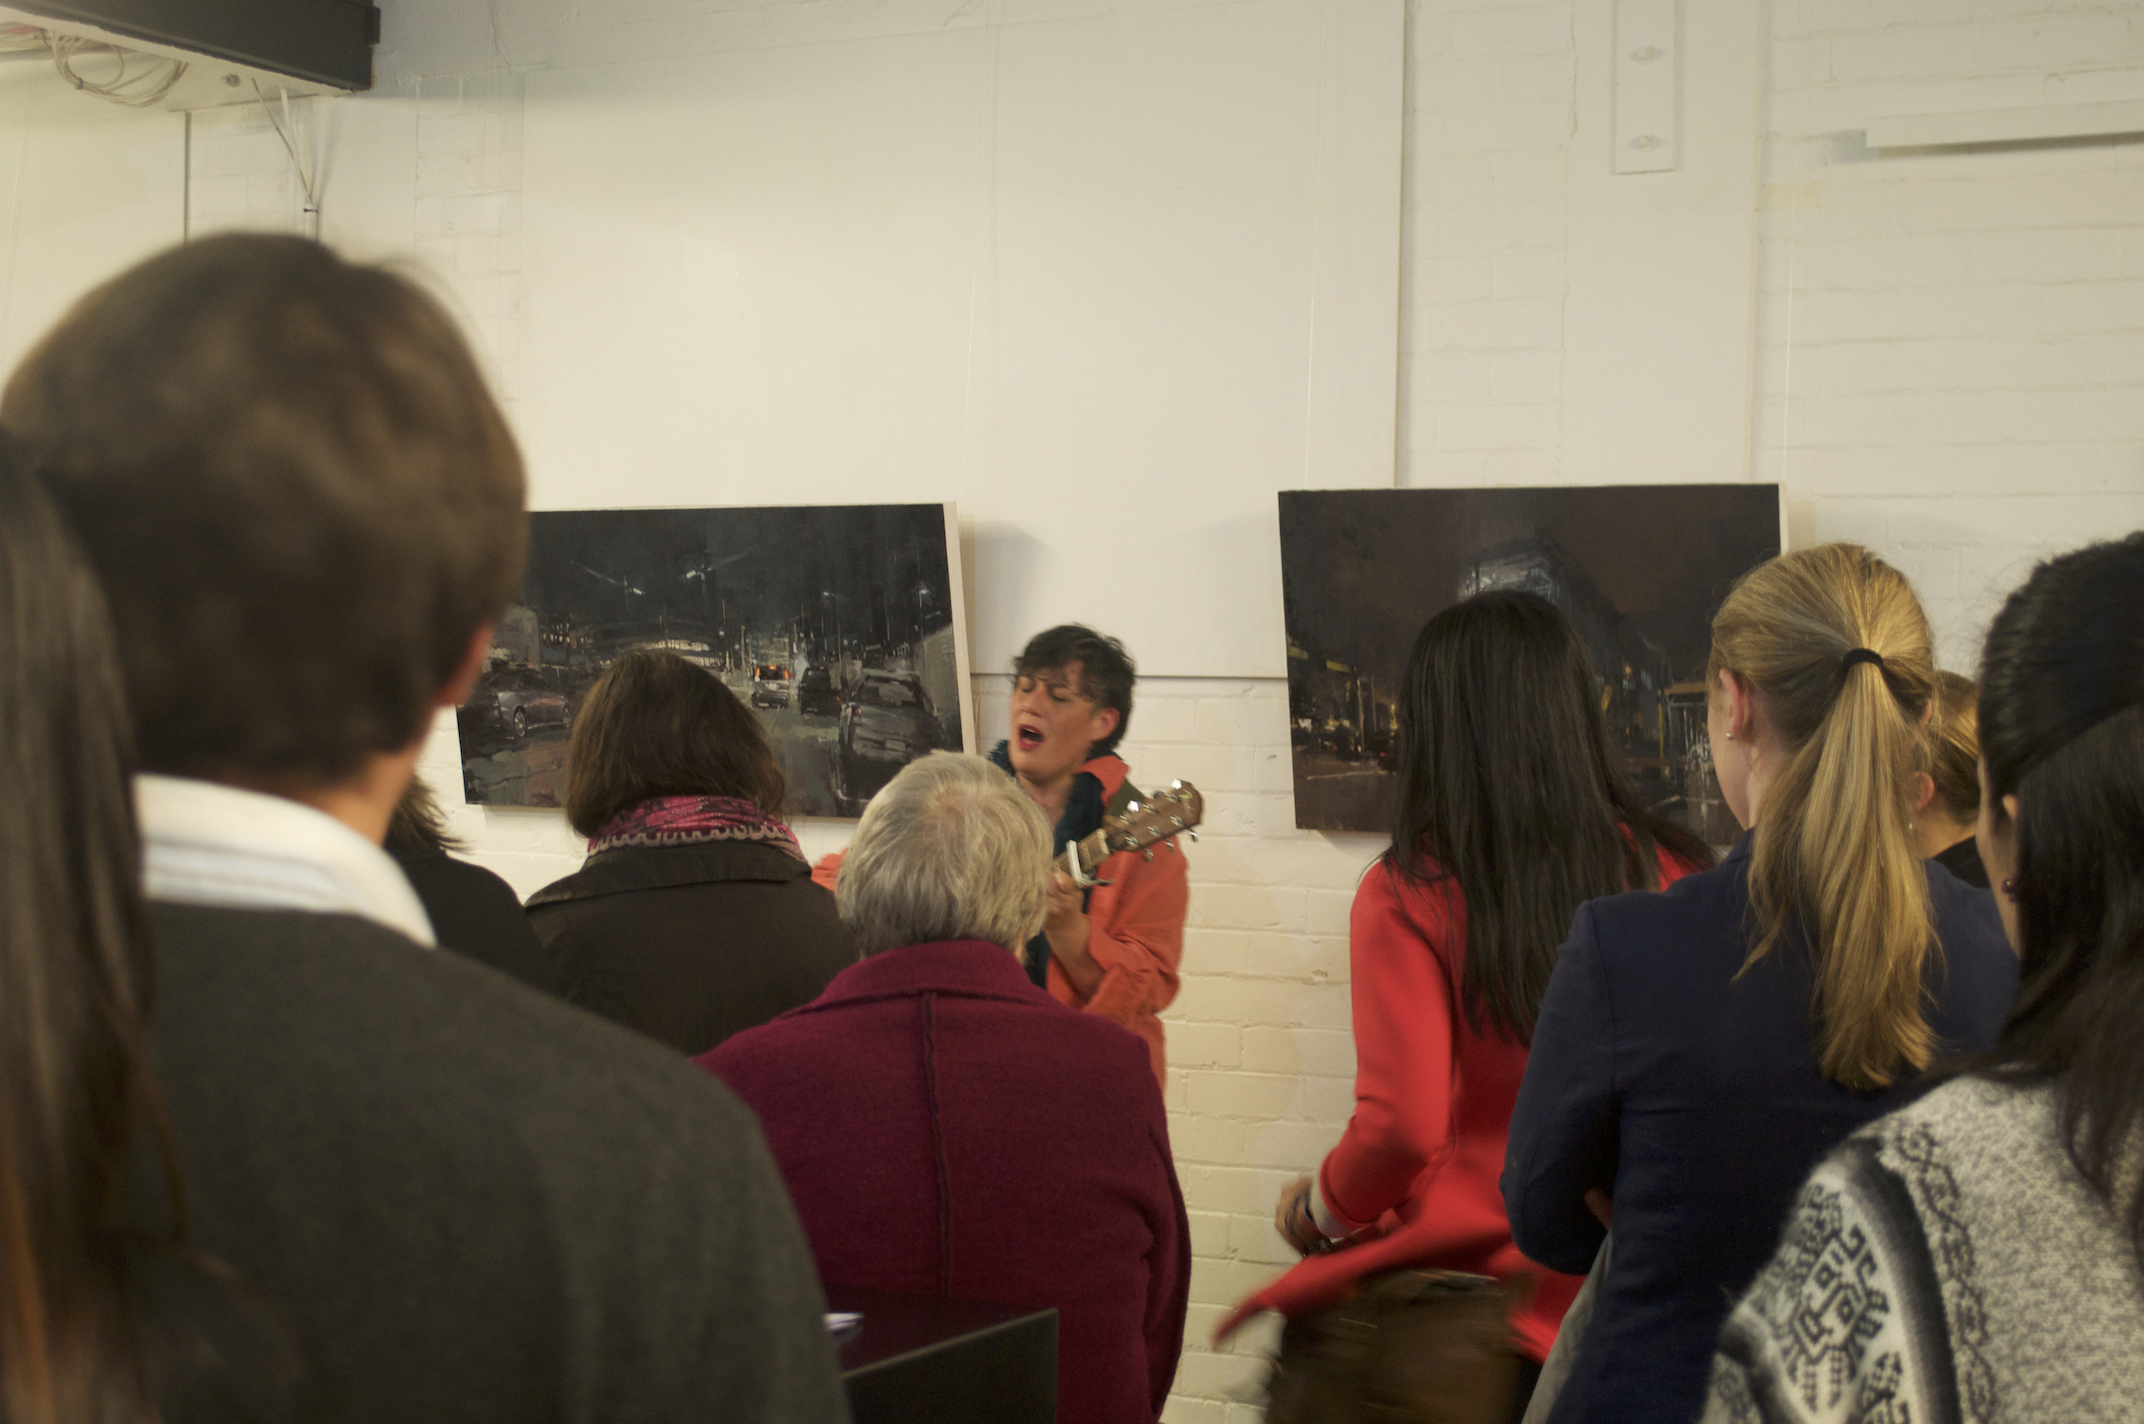 Lisa Tui performs an original piece at Liam's exhibition.